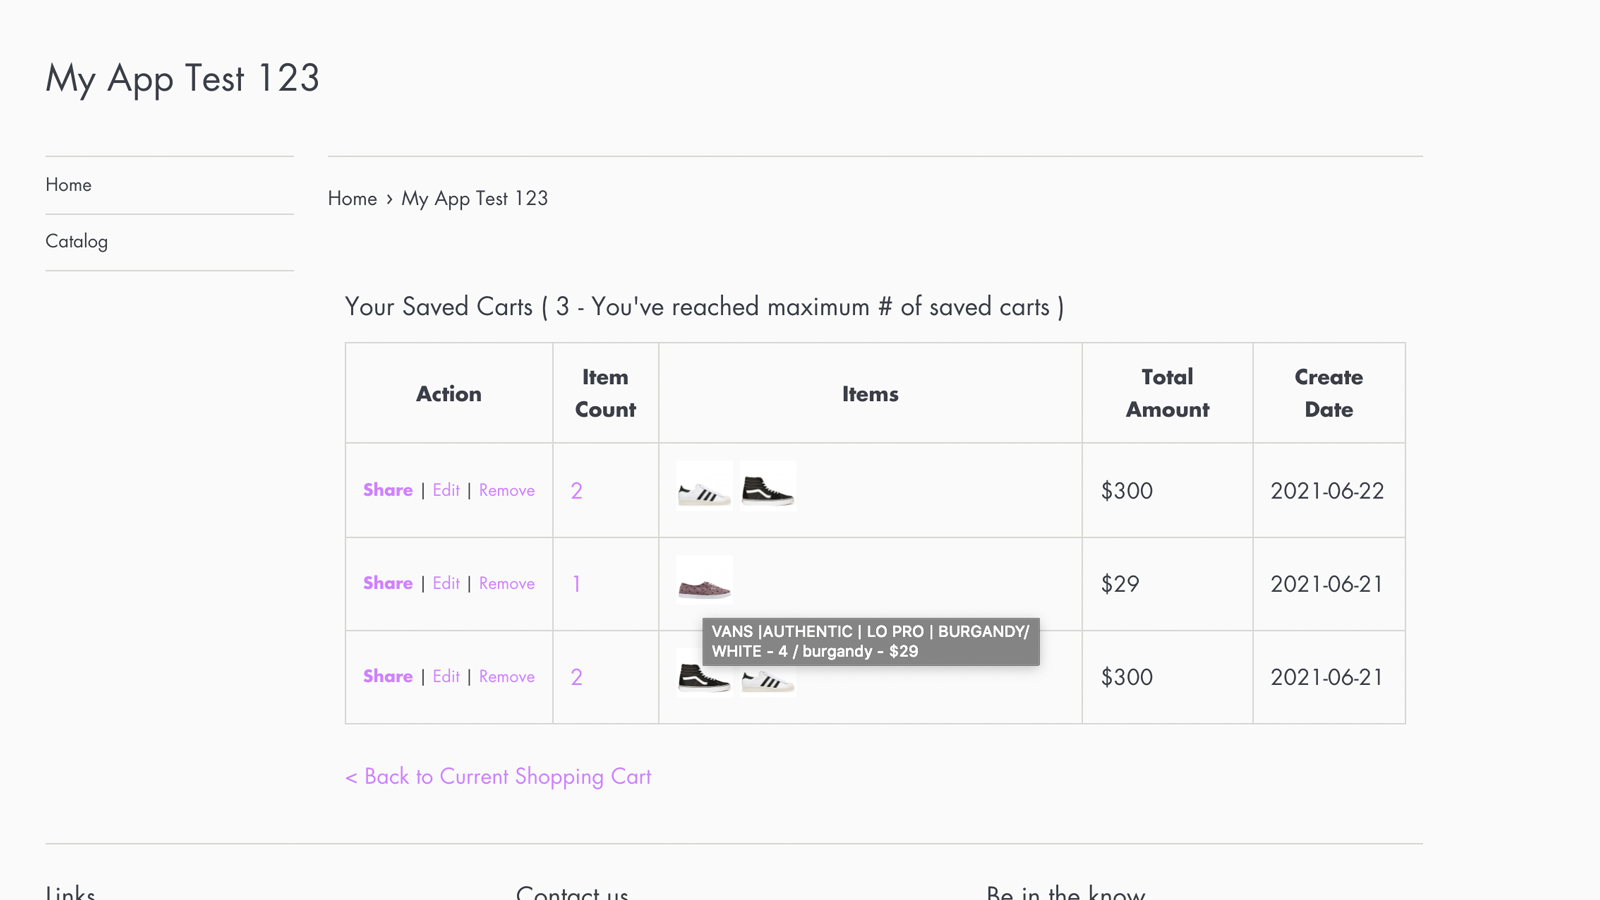 Easy to manage the saved carts